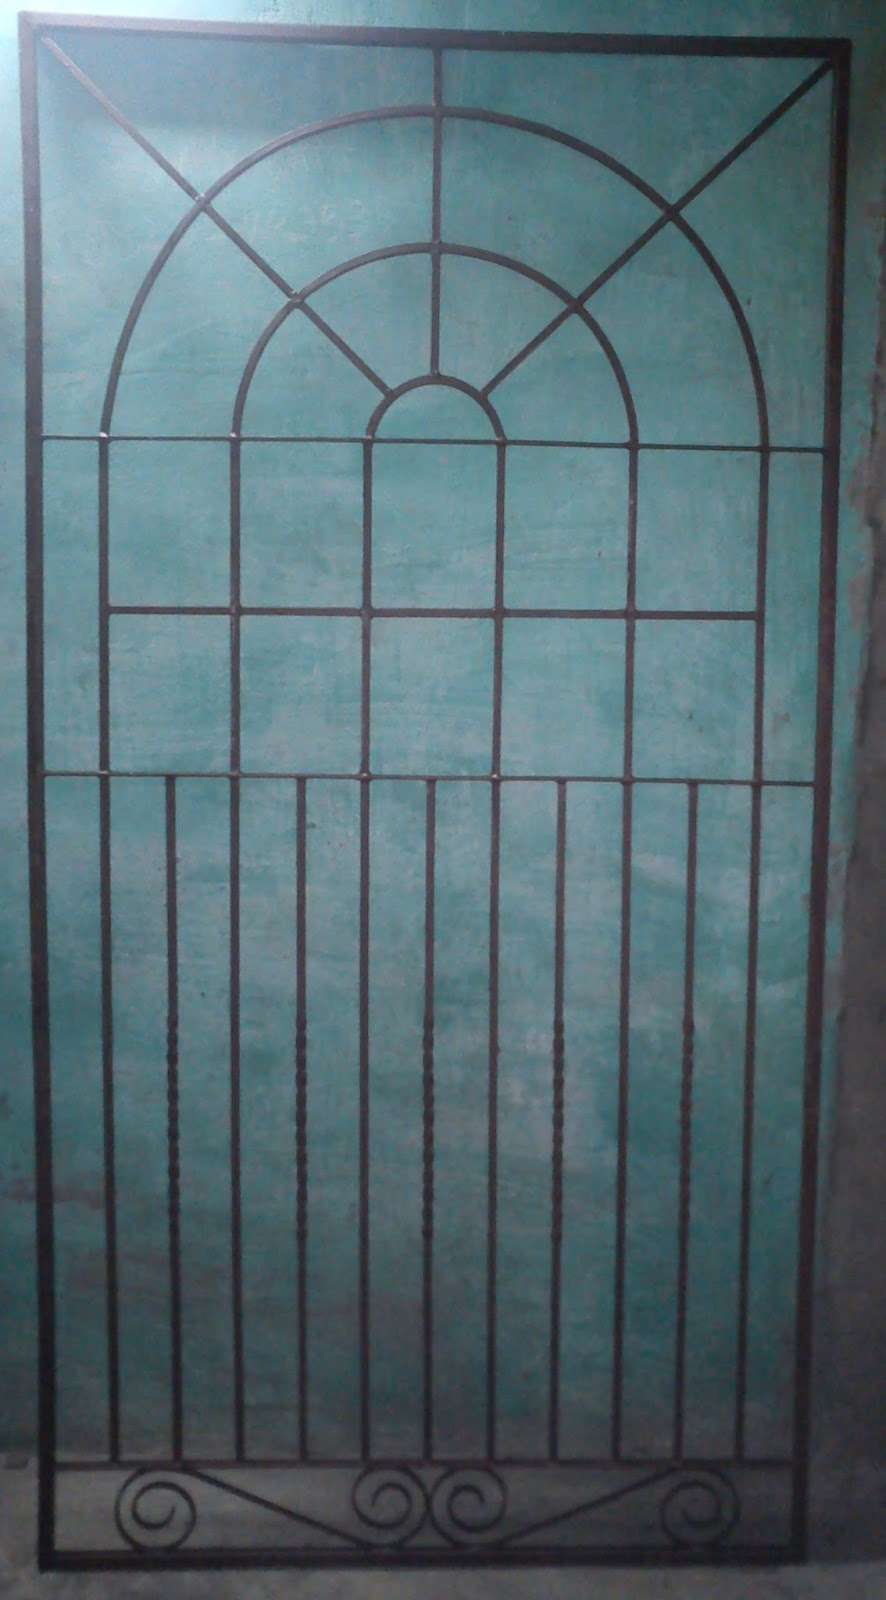 Jbl Fabrication Window Grill Workshop Vasai West Window